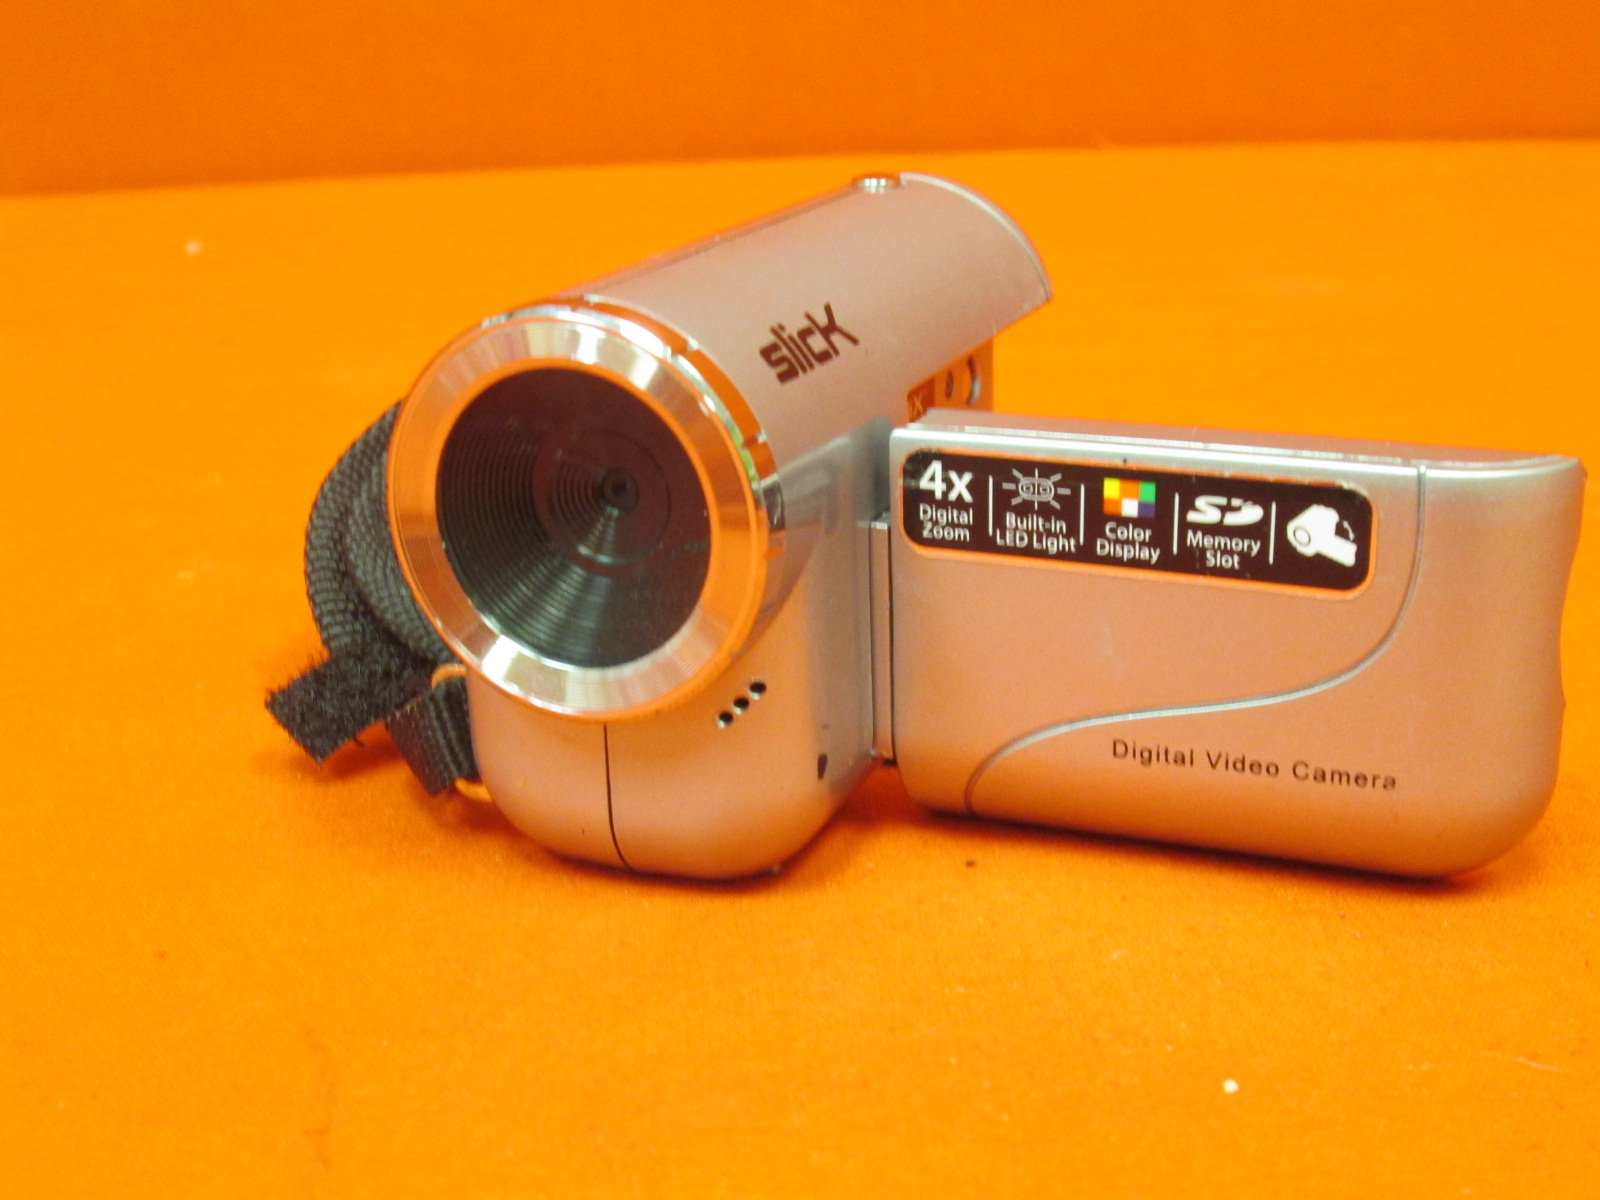 Simple Flix Slick Digital Video Camera Incomplete